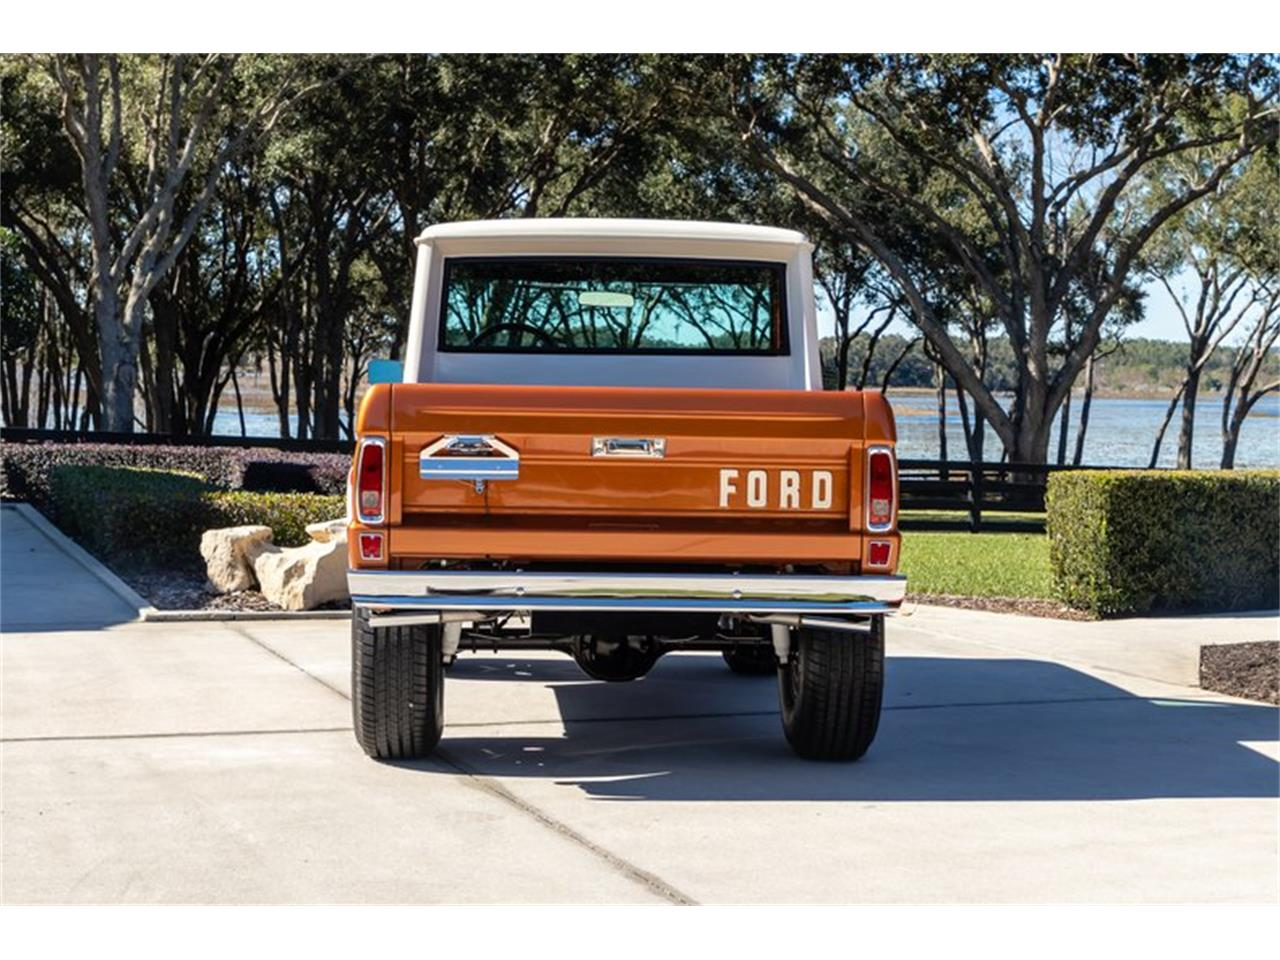 Large Picture of 1976 Ford Bronco located in North Carolina Auction Vehicle - Q8U3